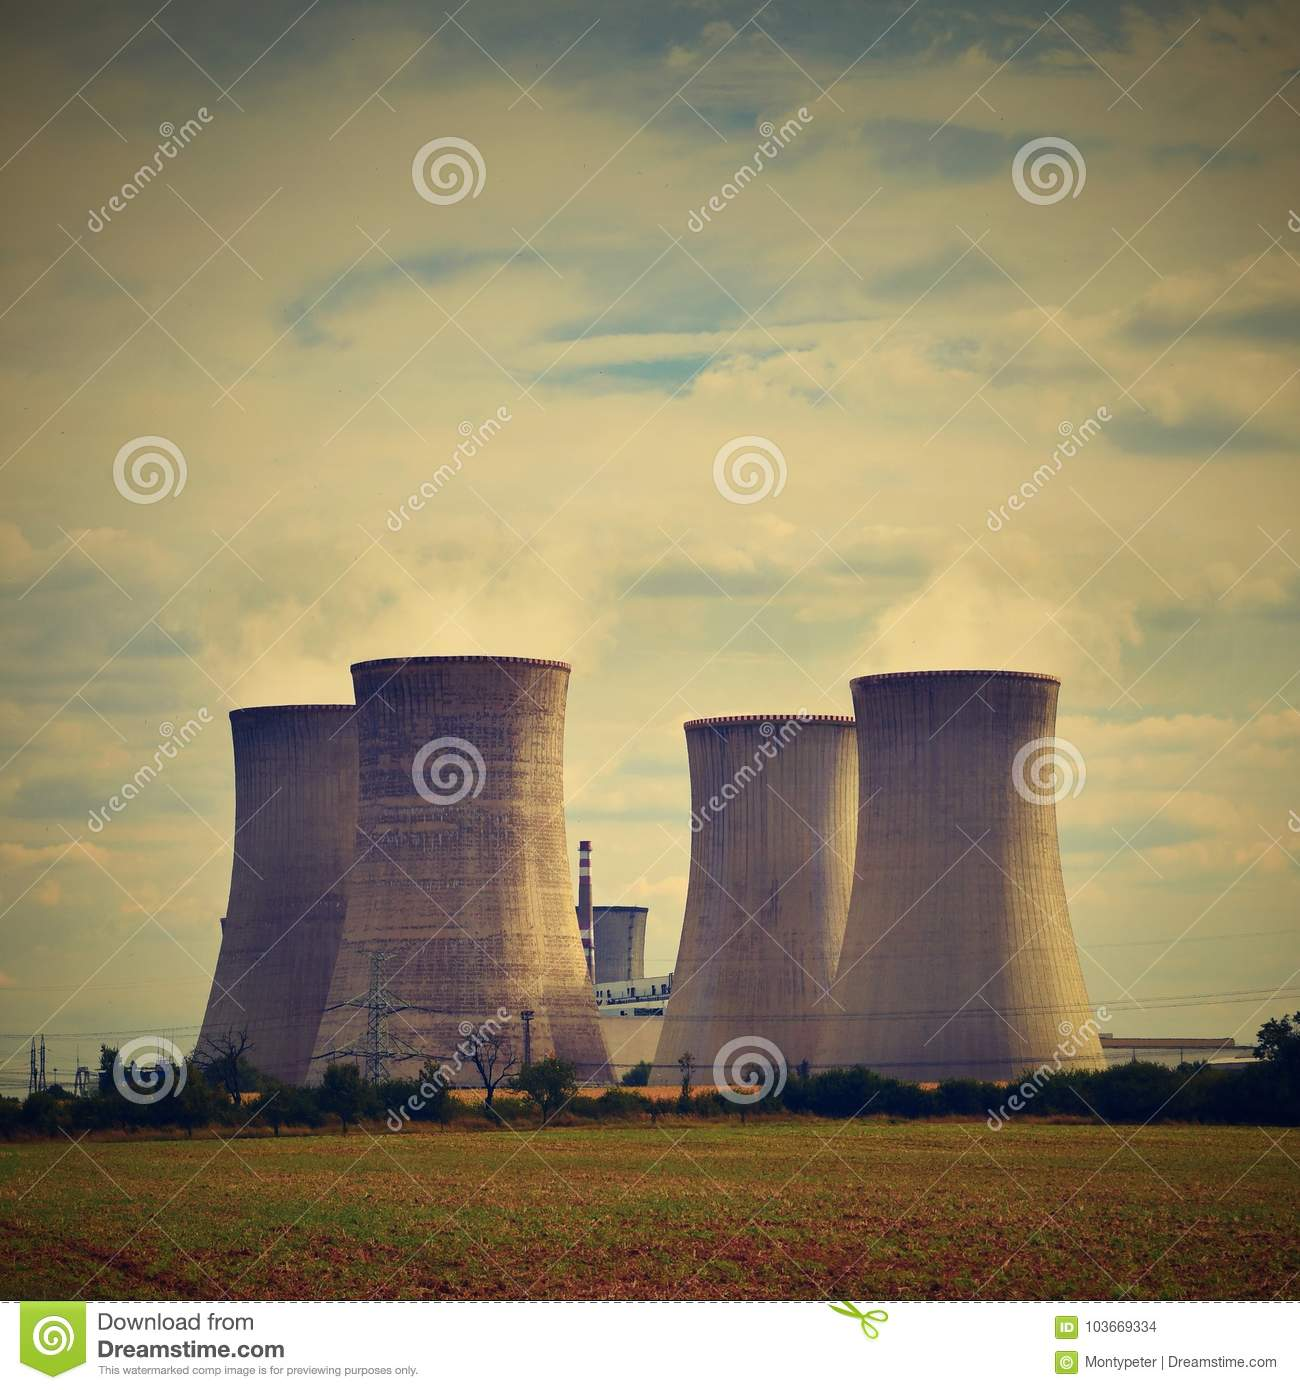 Nuclear plant . Landscape with power station chimneys. Dukovany Czech Republic.